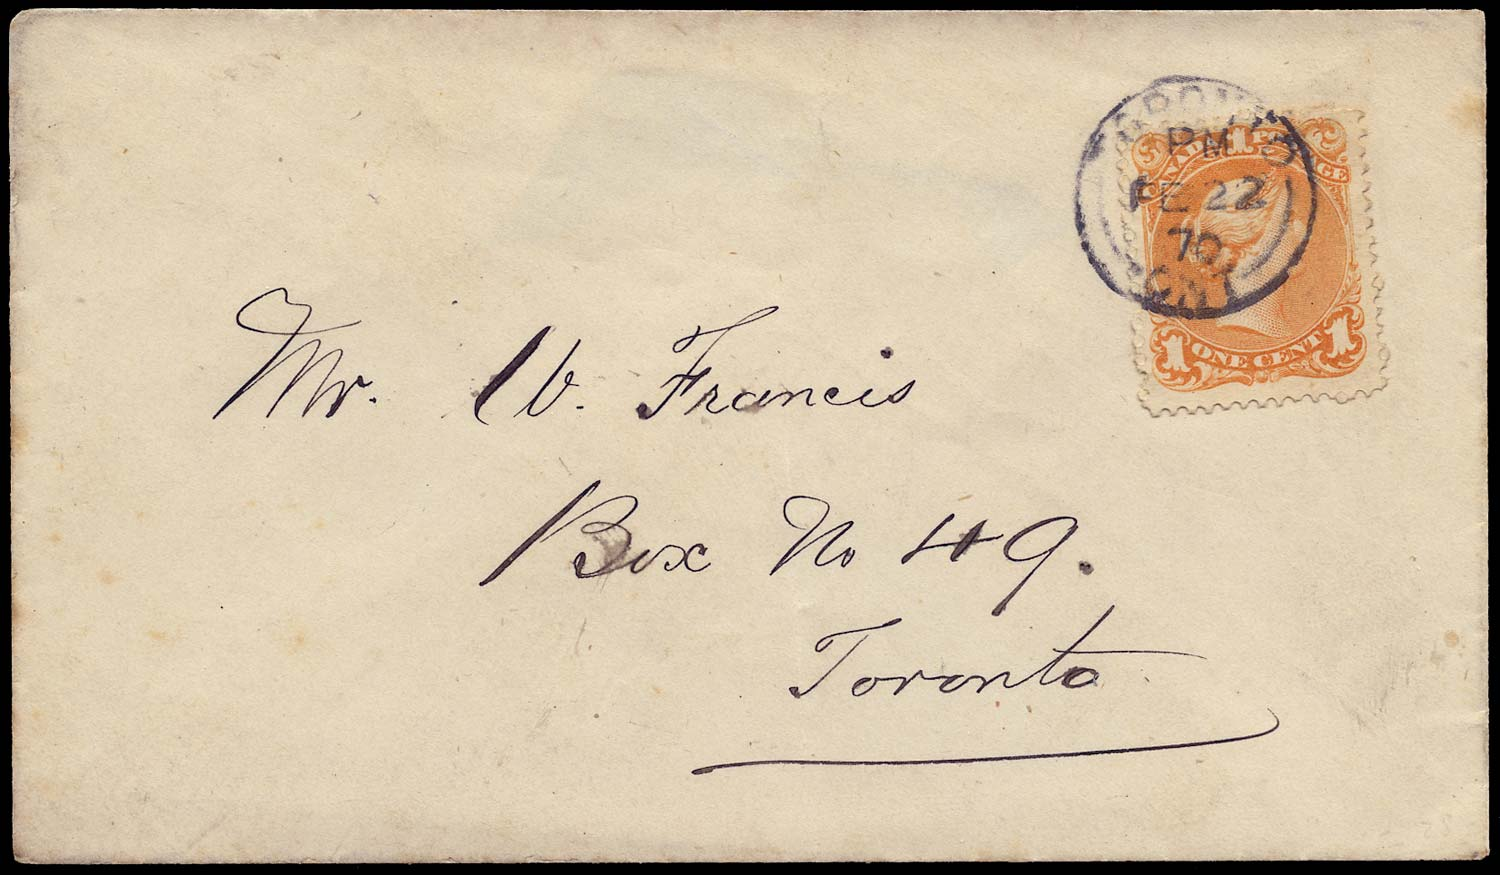 CANADA 1870  SG56a Cover franked at 1c local drop letter rate